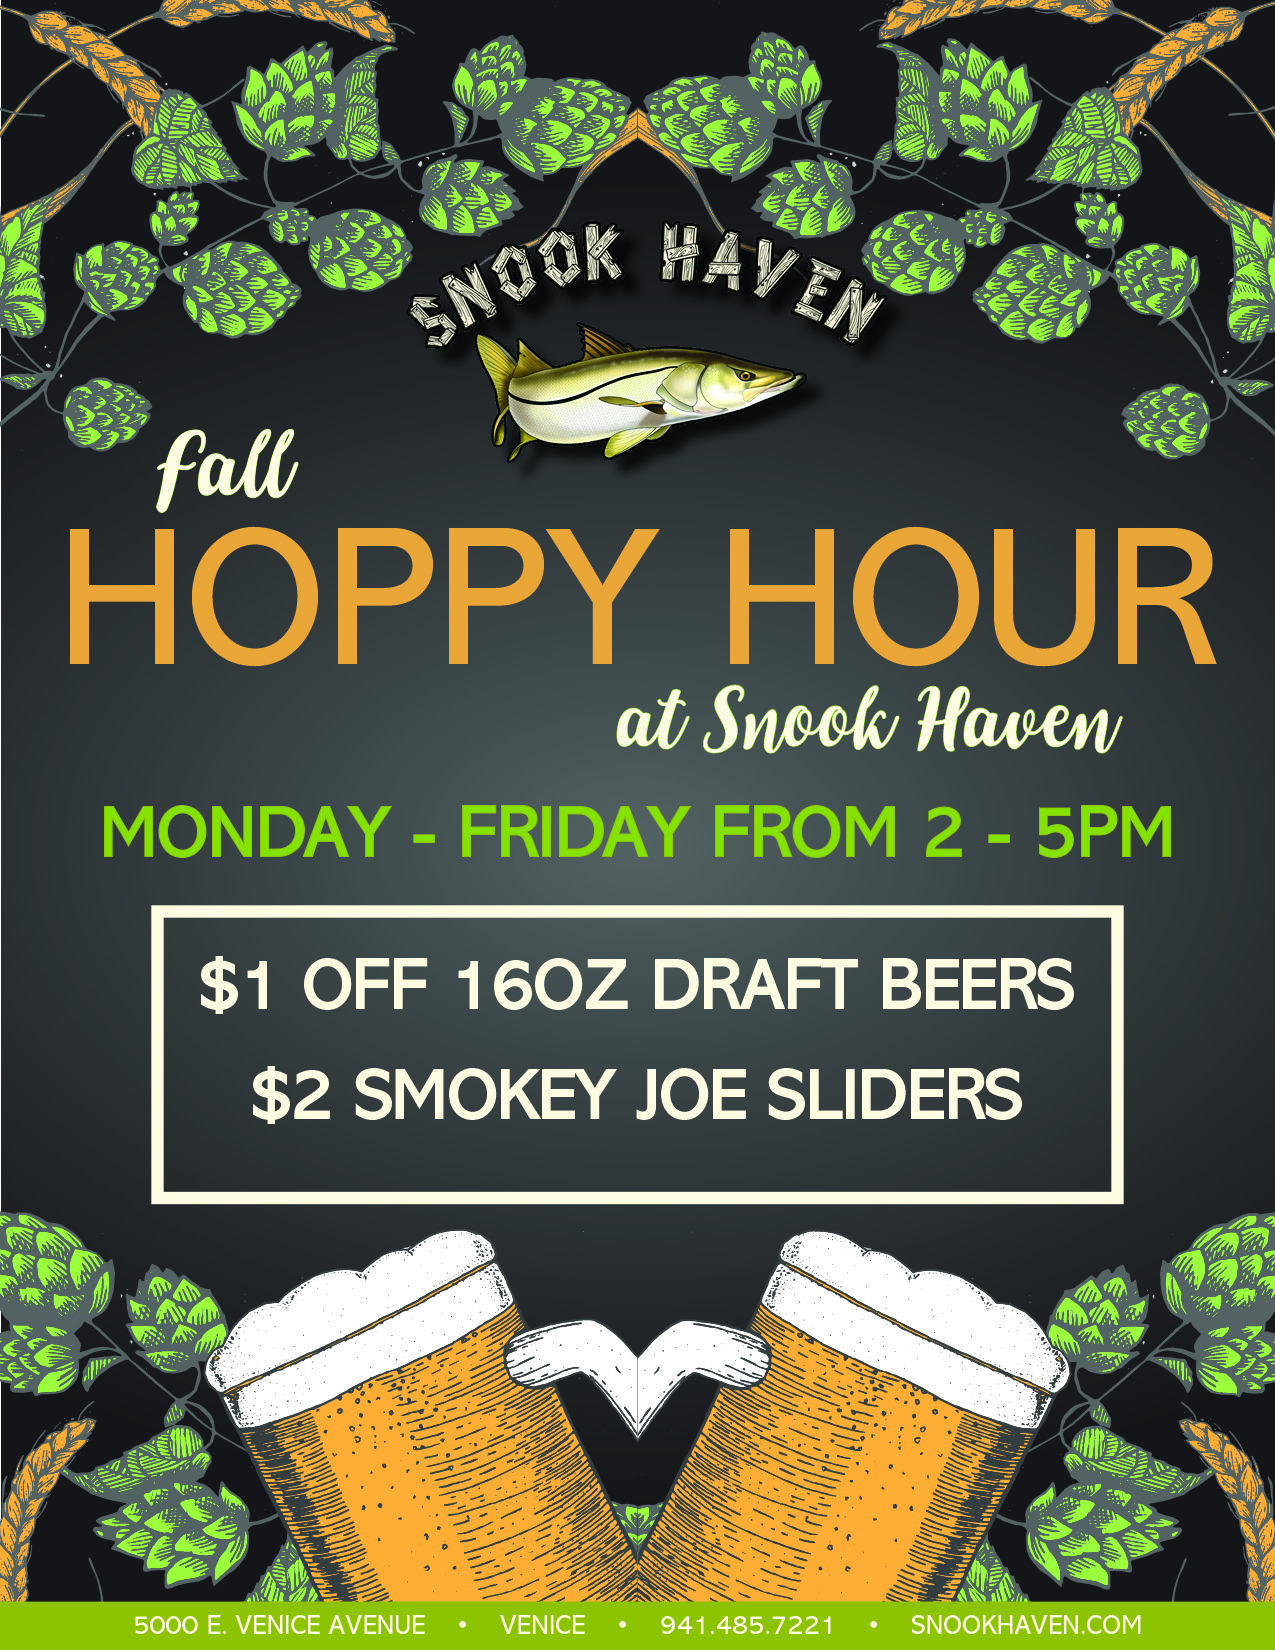 Fall Hoppy Hour at Snook Haven